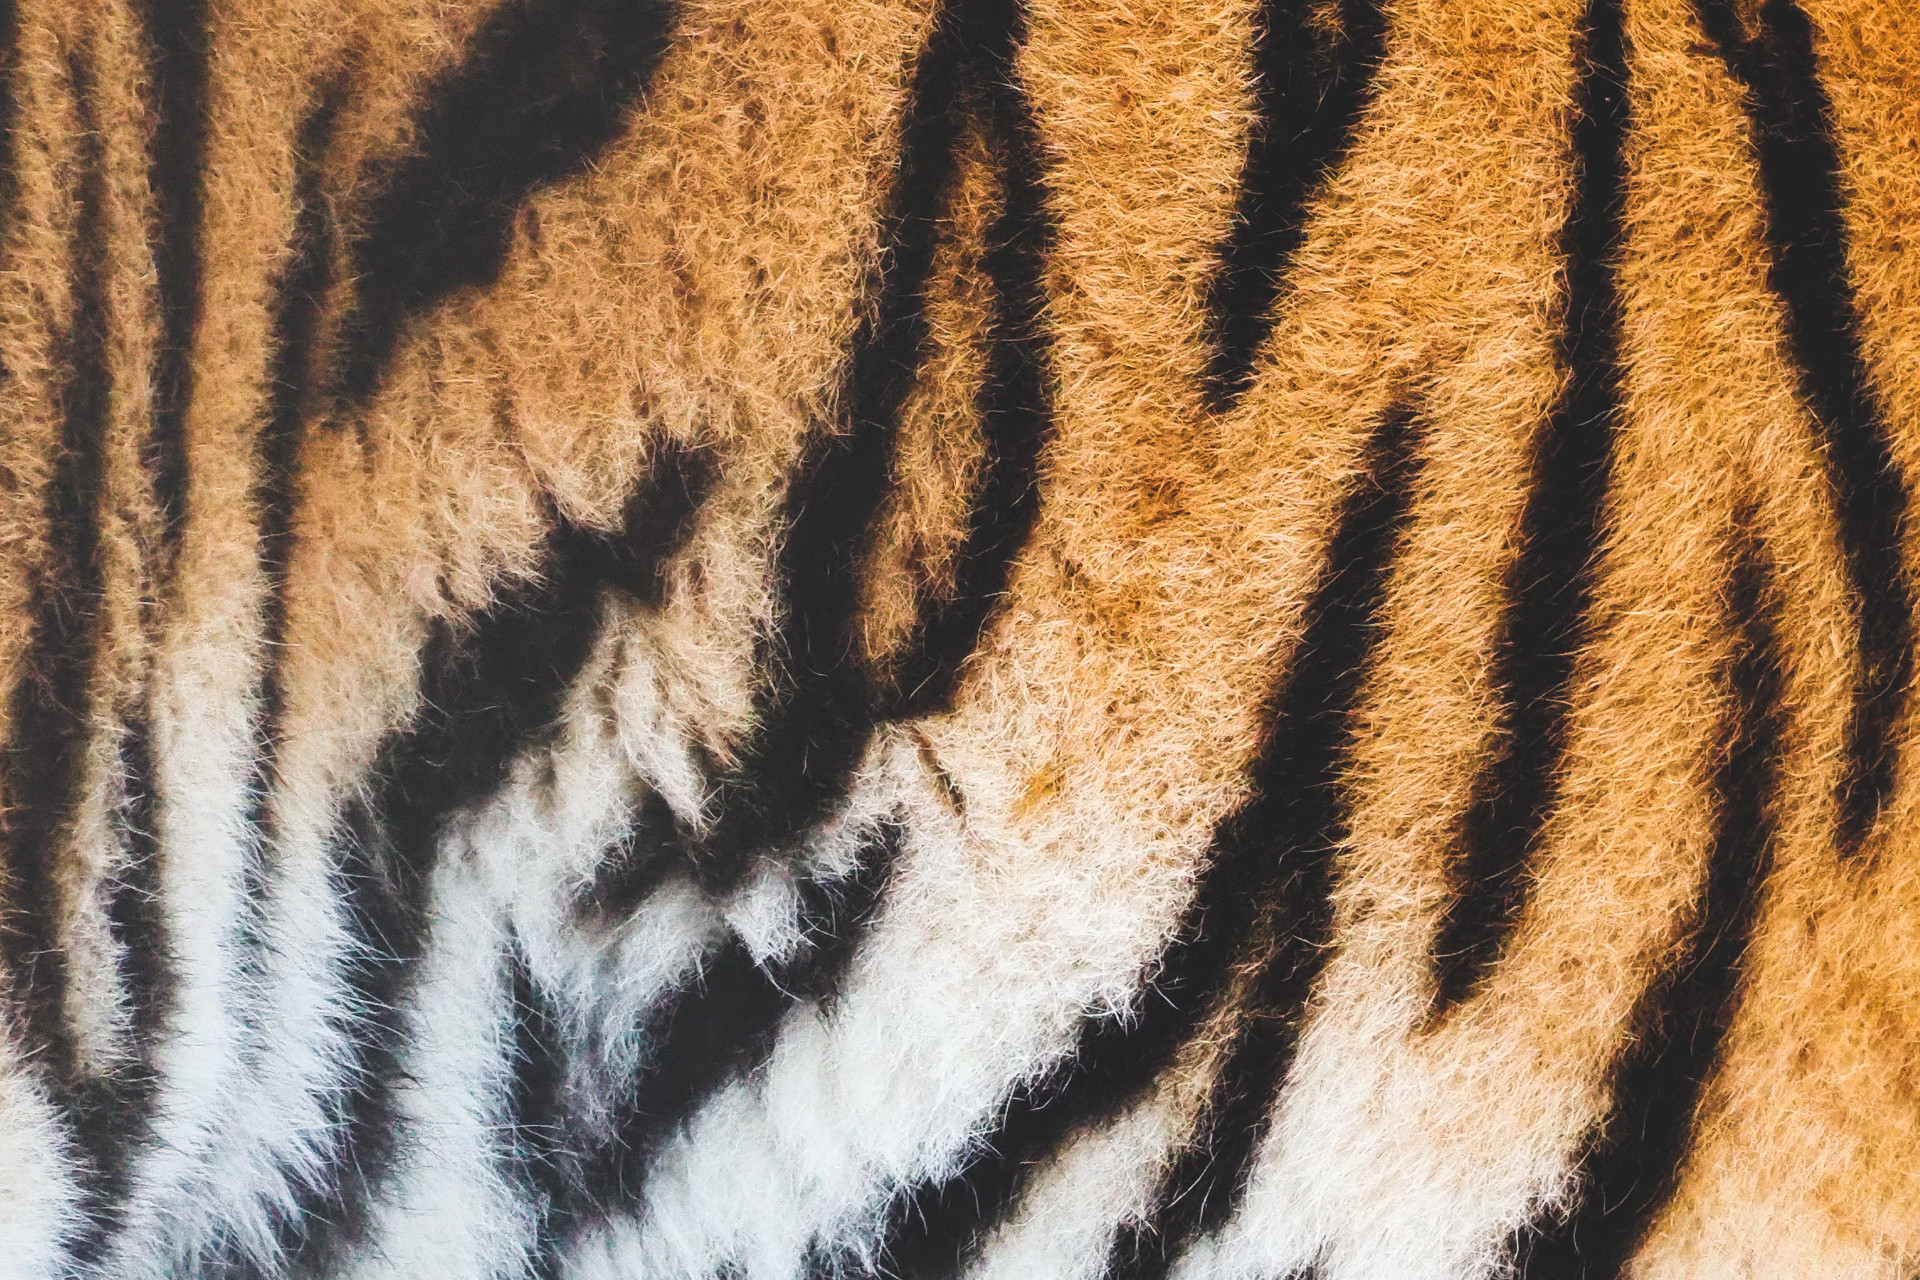 Tiger fur pattern